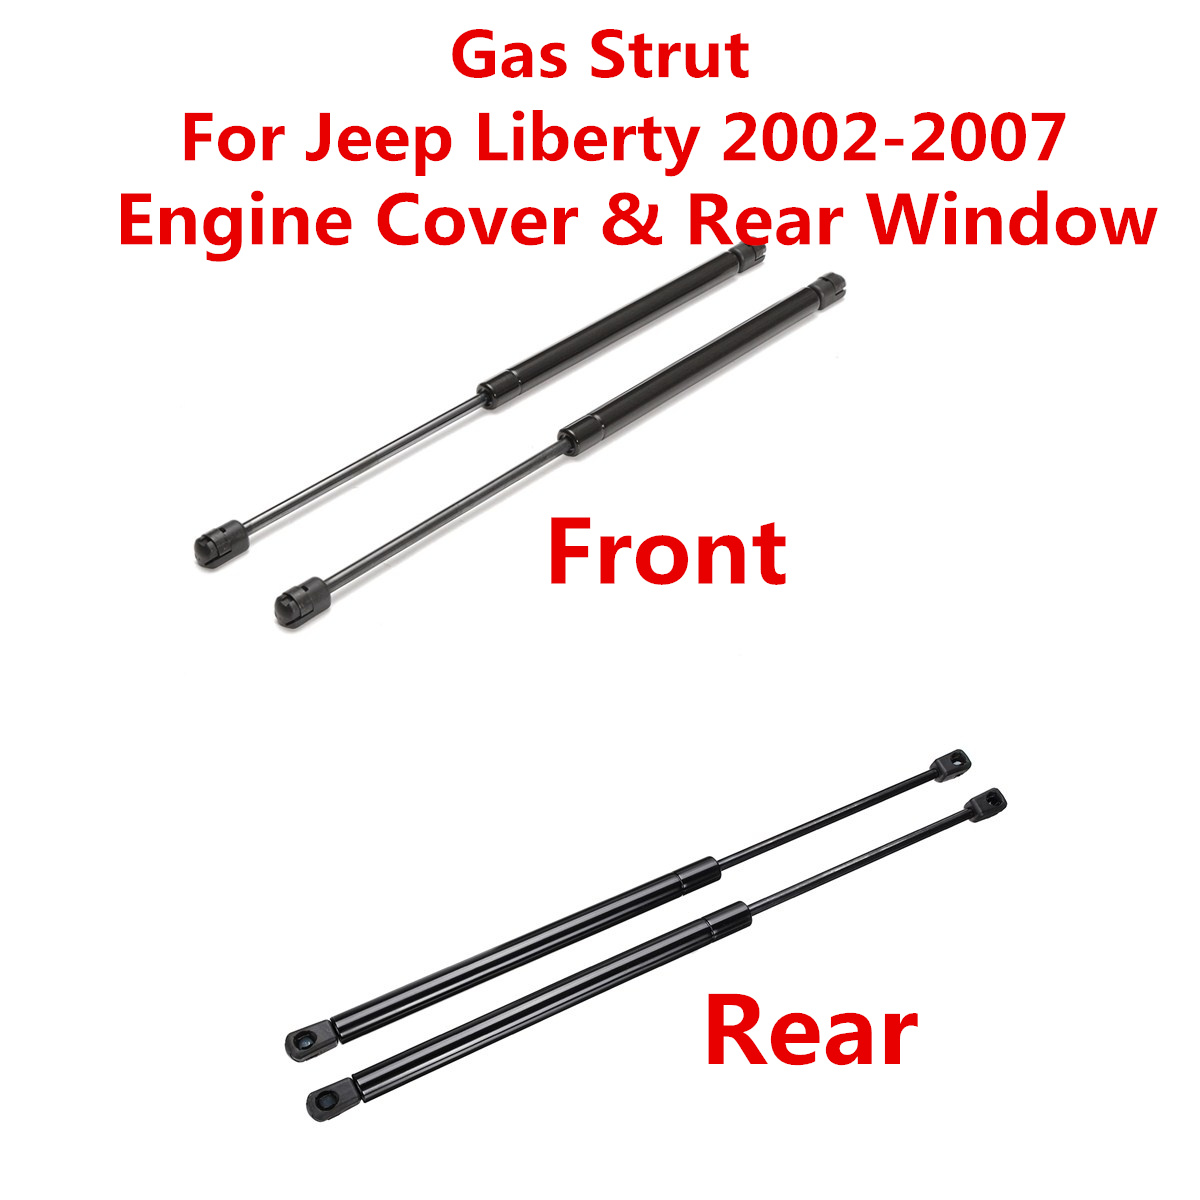 Car Front Engine Hood Cover Rear Window Lift Shocks Supports Struts Bar Gas Springs For Jeep Liberty 2002 2003 2004 2005 - 2007